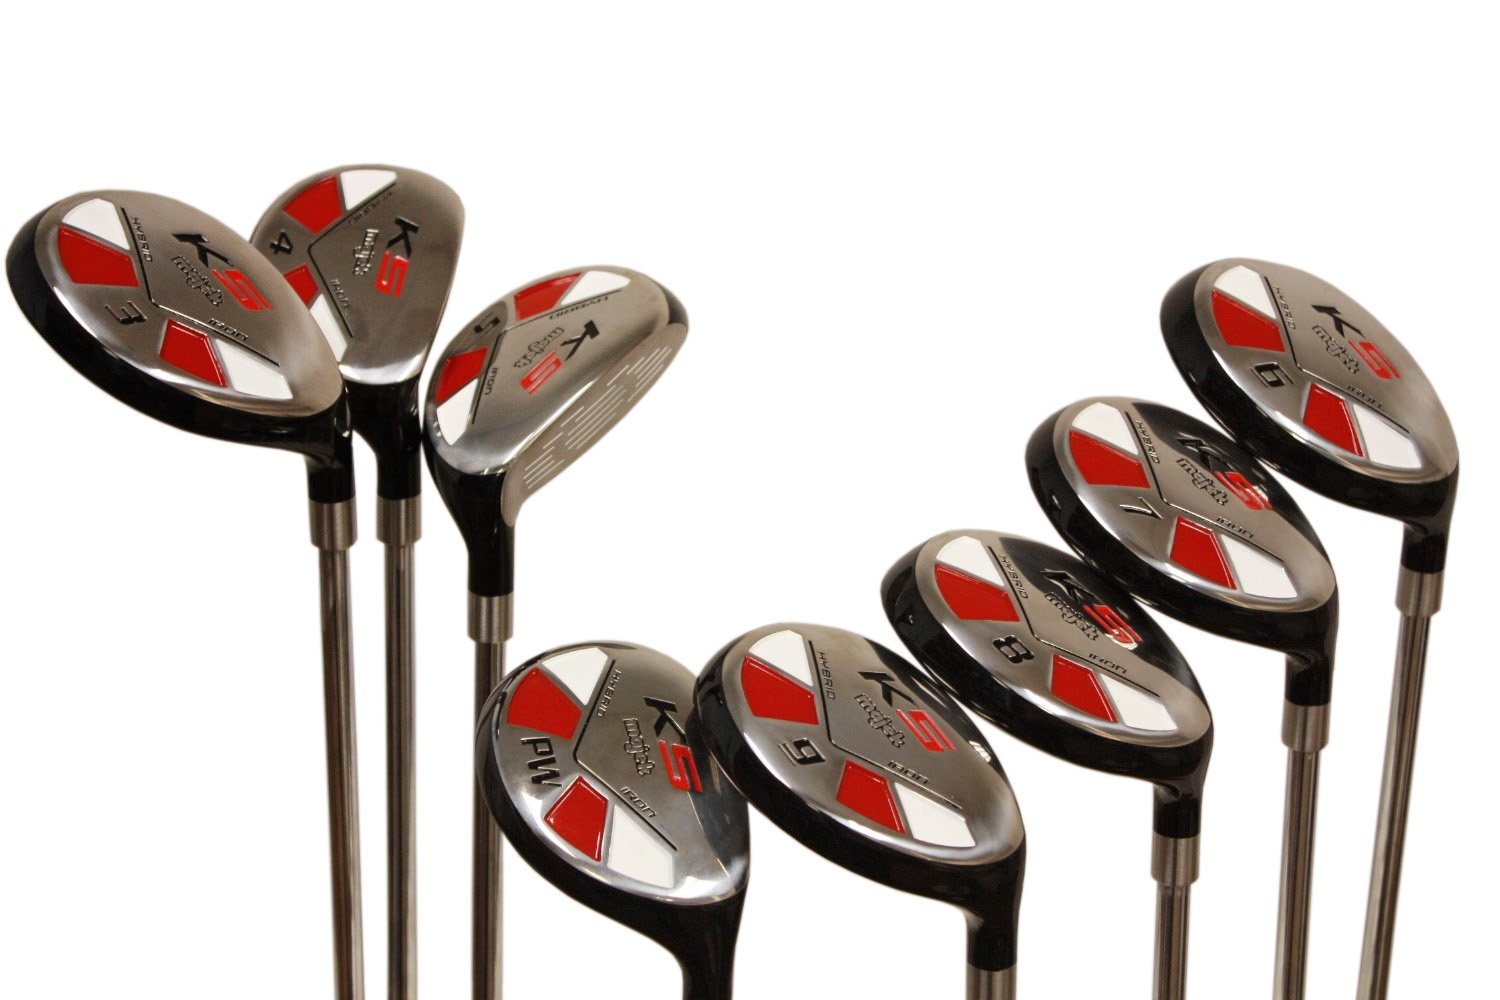 """Tall Senior Golf Hybrids Big +1'' Longer Than Standard Length (Plus One Inch Longer) Set All Complete Full Set, Which Includes: #3, 4, 5, 6, 7, 8, 9, Pw Senior Flex Right Handed New Rescue Utility """"A"""" Flex Club"""